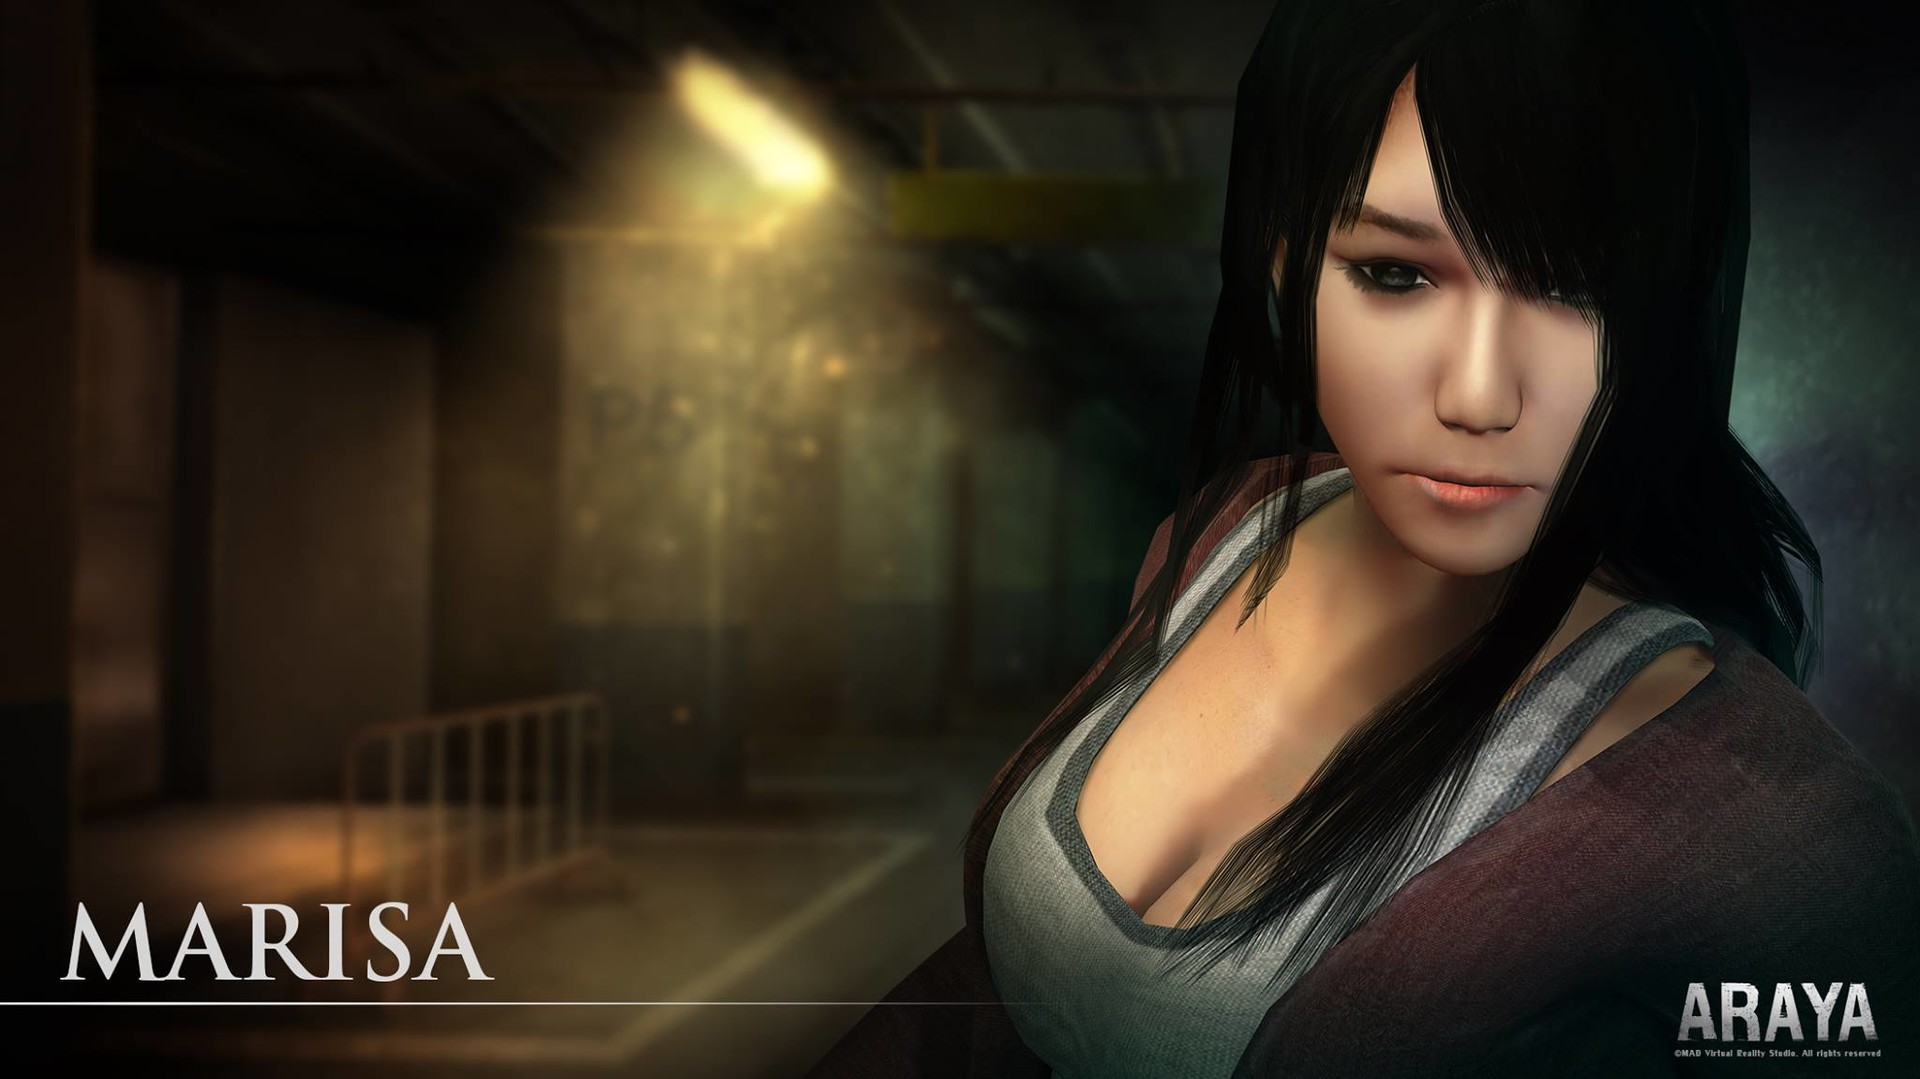 ARAYA On Steam